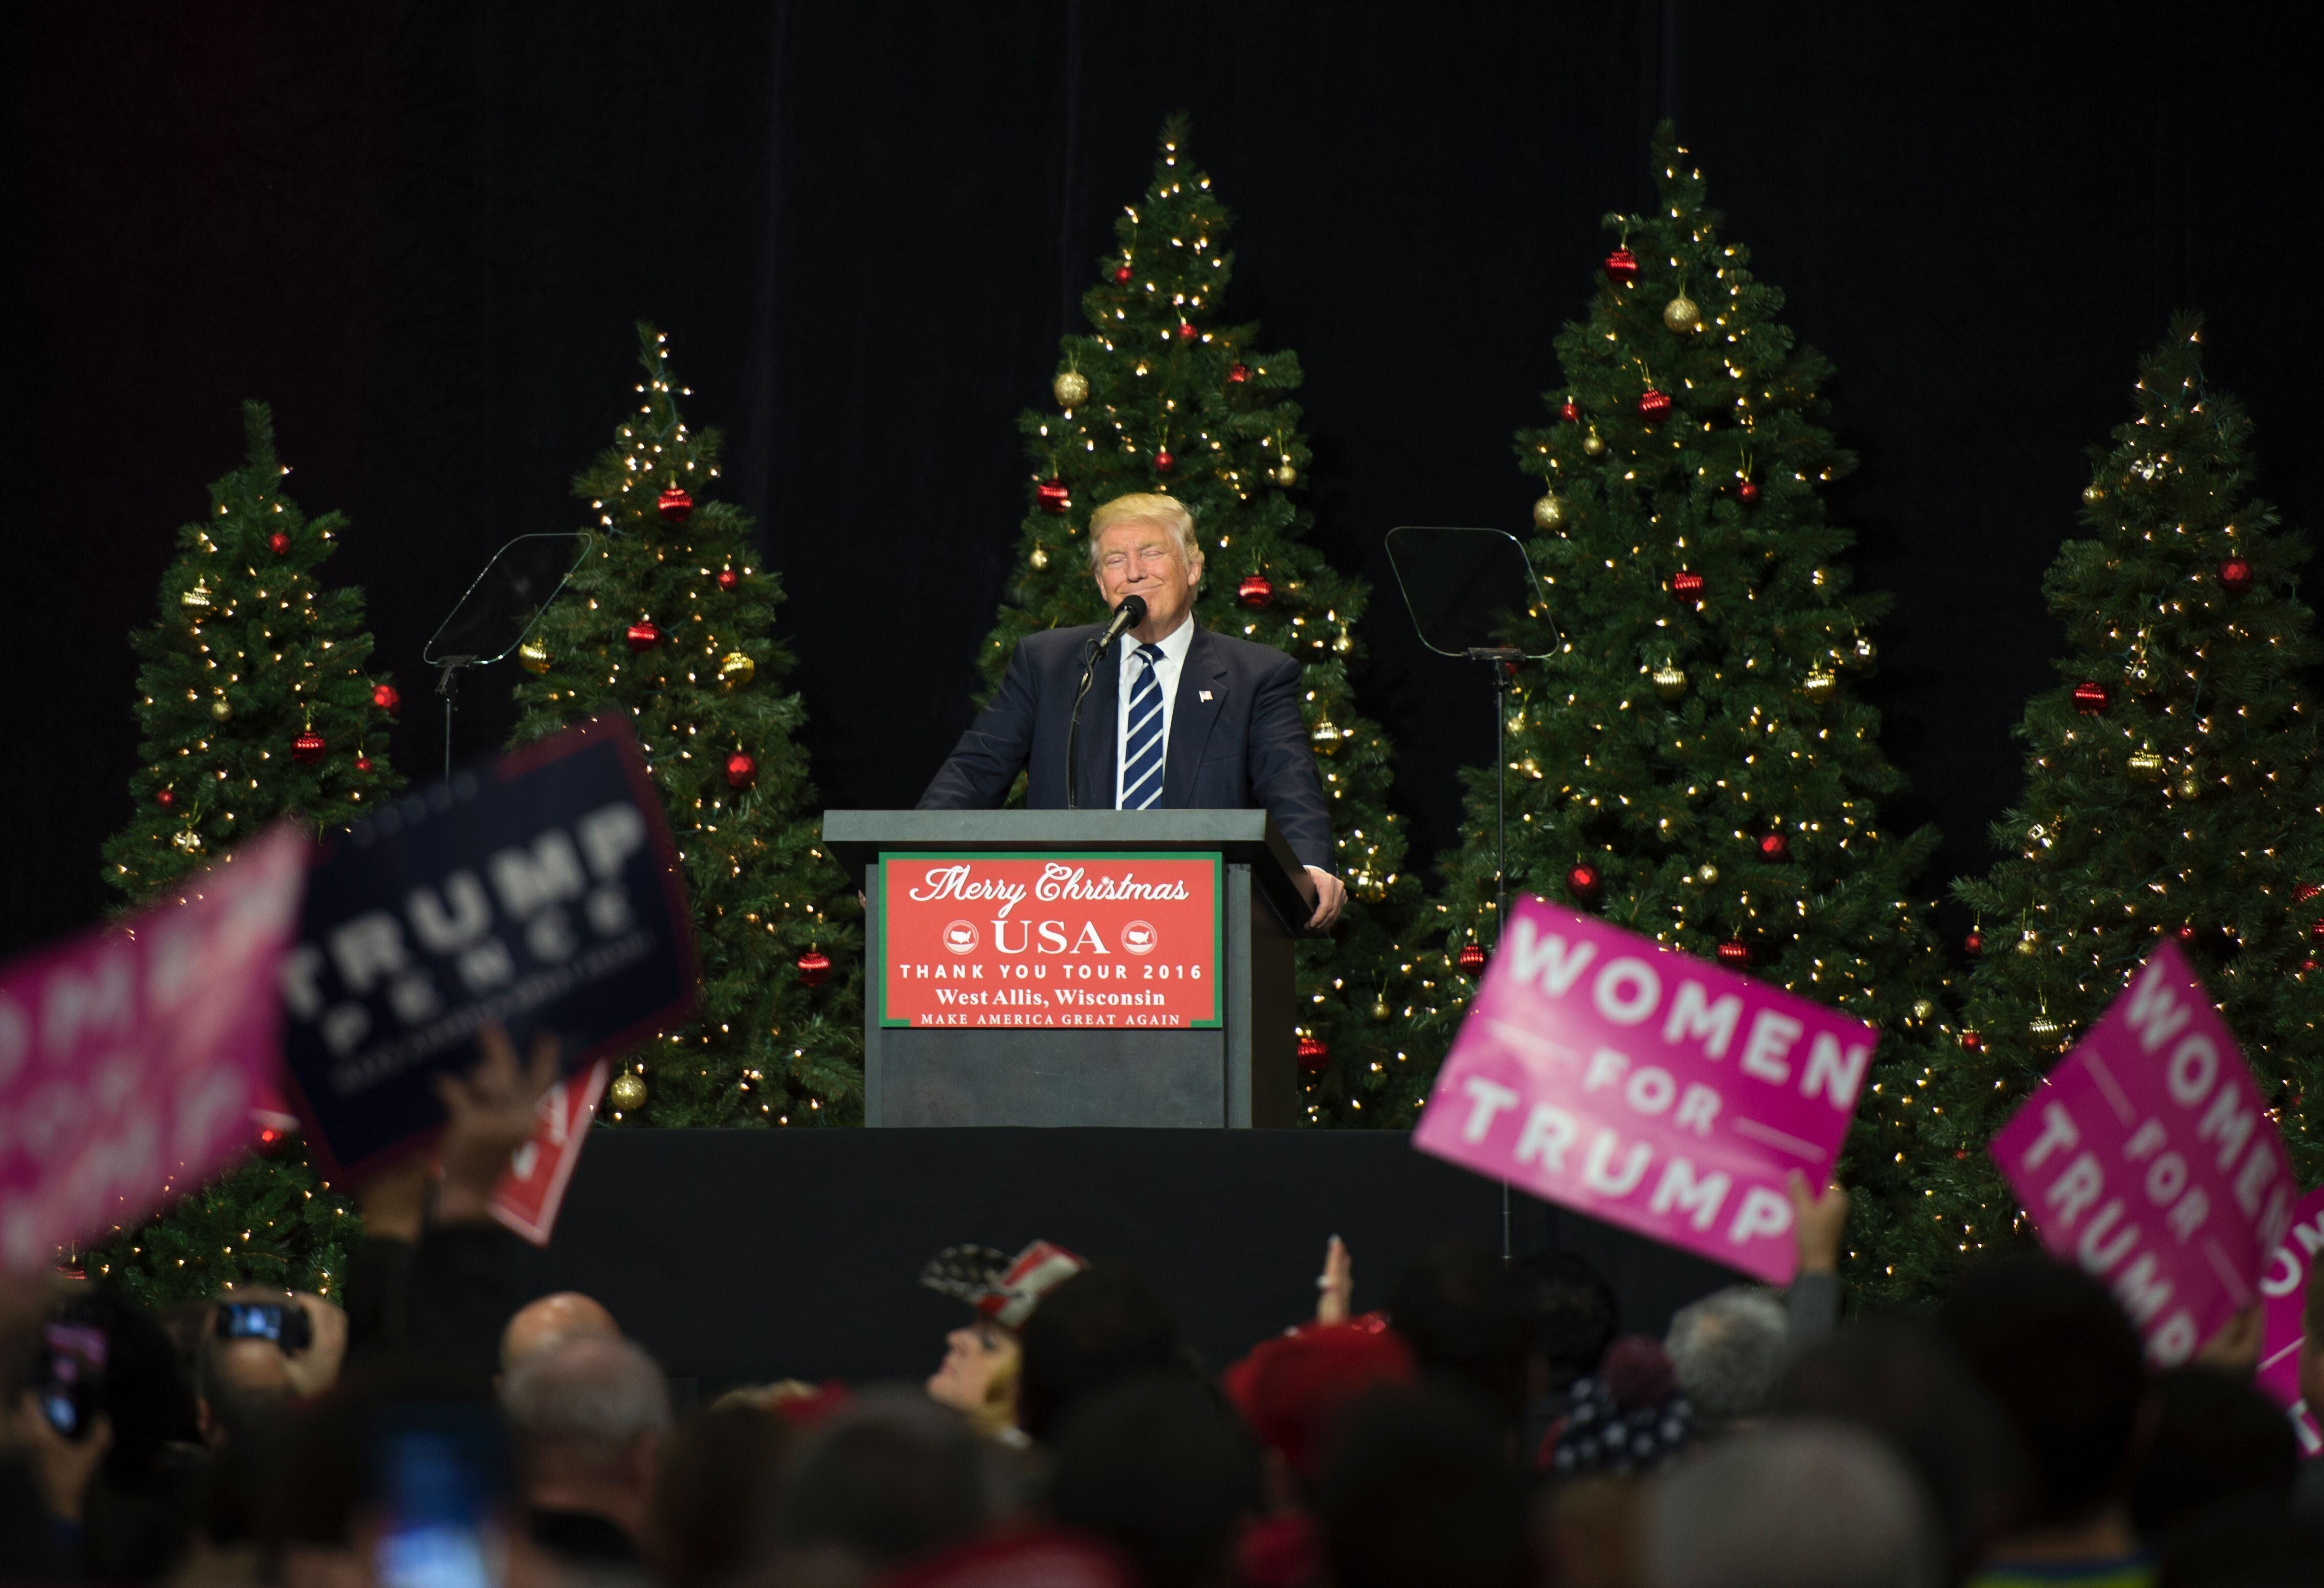 President-elect Donald Trump speaks at the USA Thank You Tour 2016 at theWisconsin State Fair Exposition Center December 13, 2016 in West Allis, Wisconsin.  / AFP / DON EMMERT        (Photo credit should read DON EMMERT/AFP/Getty Images)